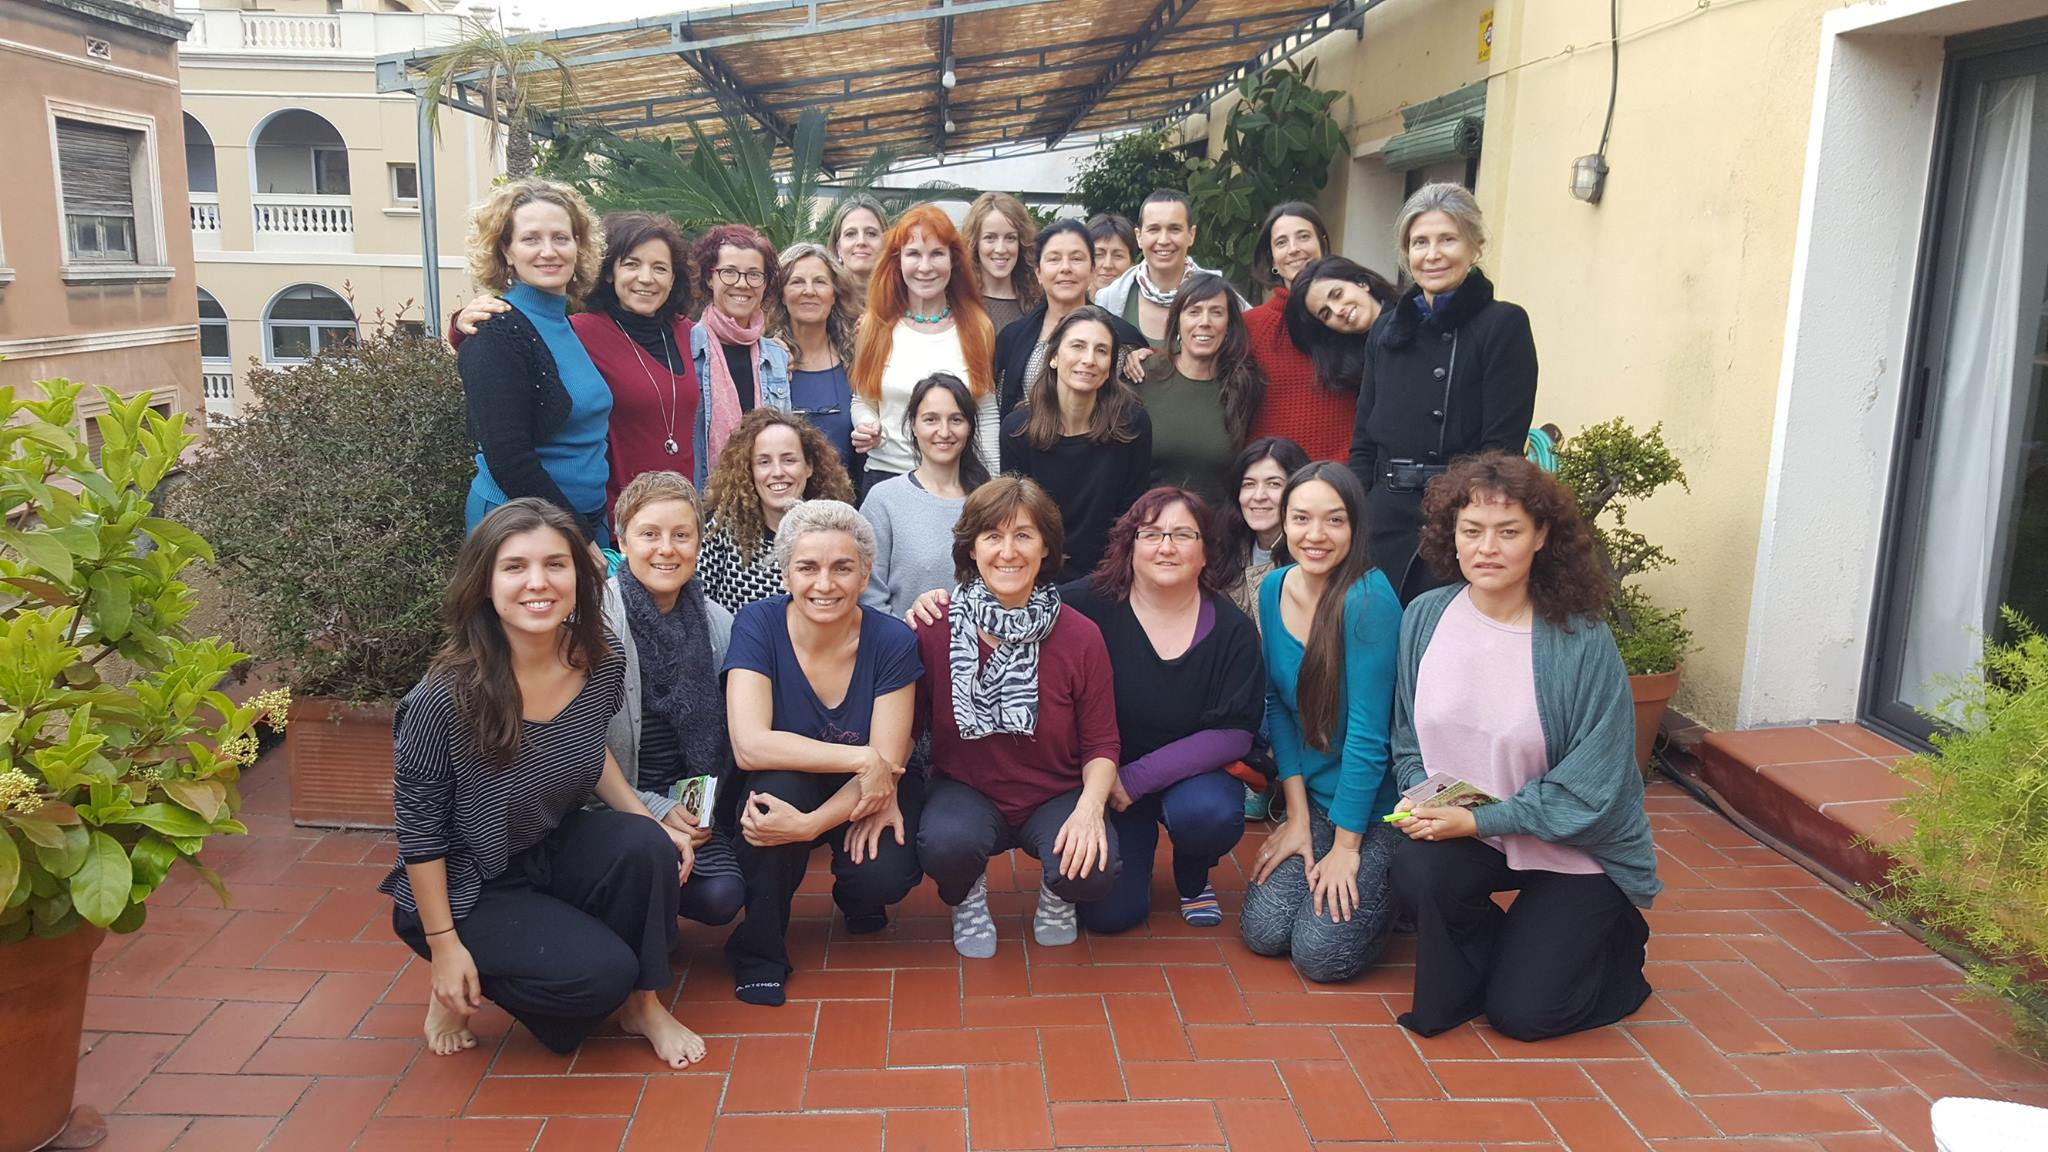 Amazing Female Healing Group